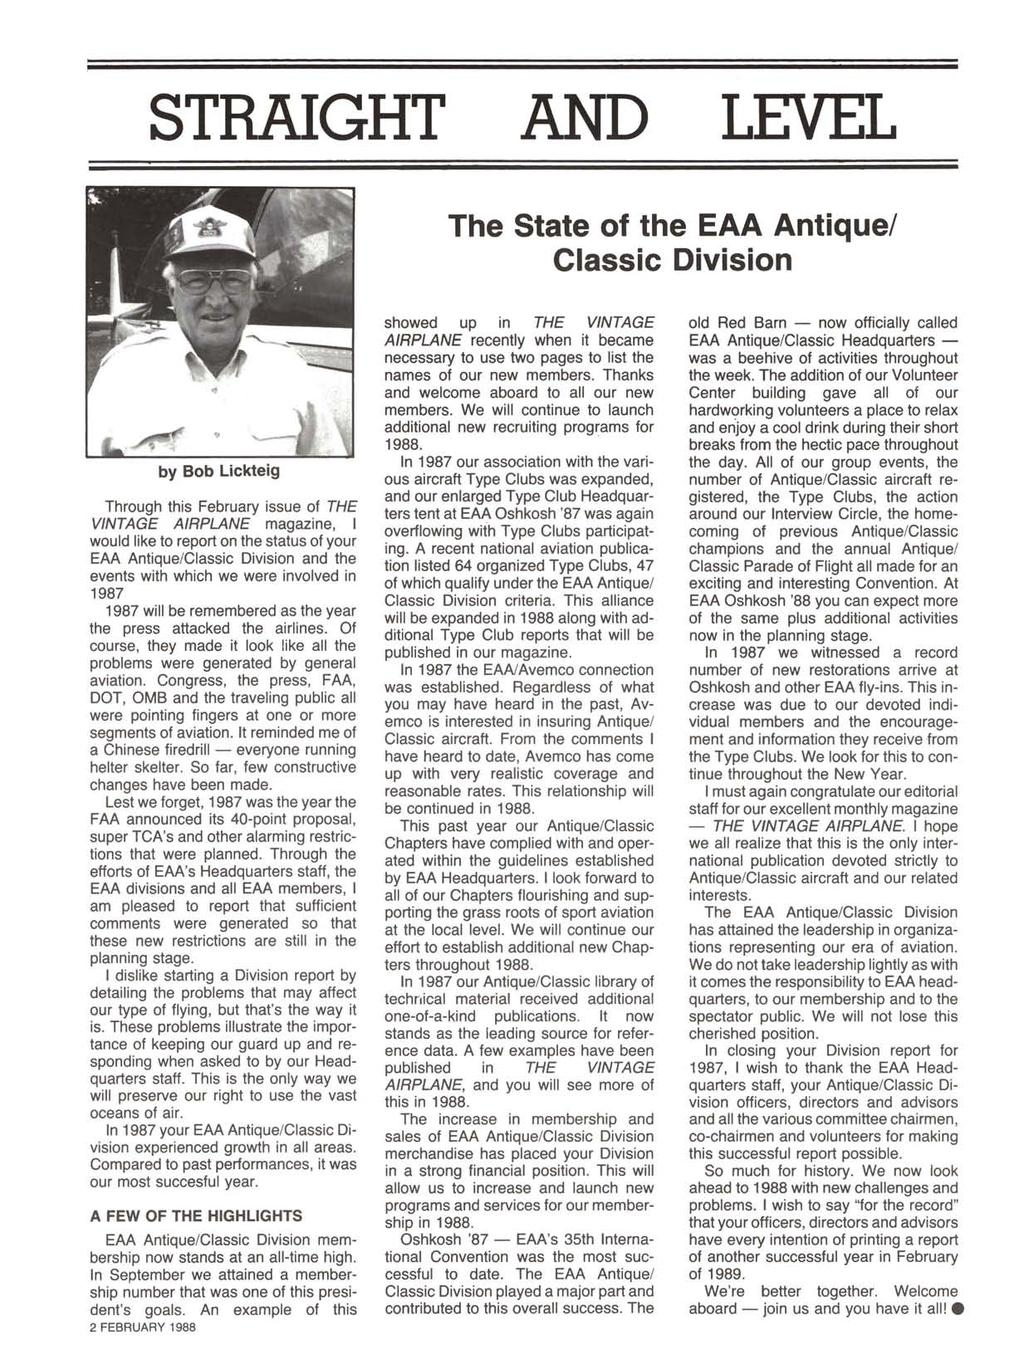 STRAIGHT AND LEVEL The State of the EAA Antique/ Classic Division by Bob Lickteig Through this February issue of THE VINTAGE AIRPLANE magazine, I would like to report on the status of your EAA